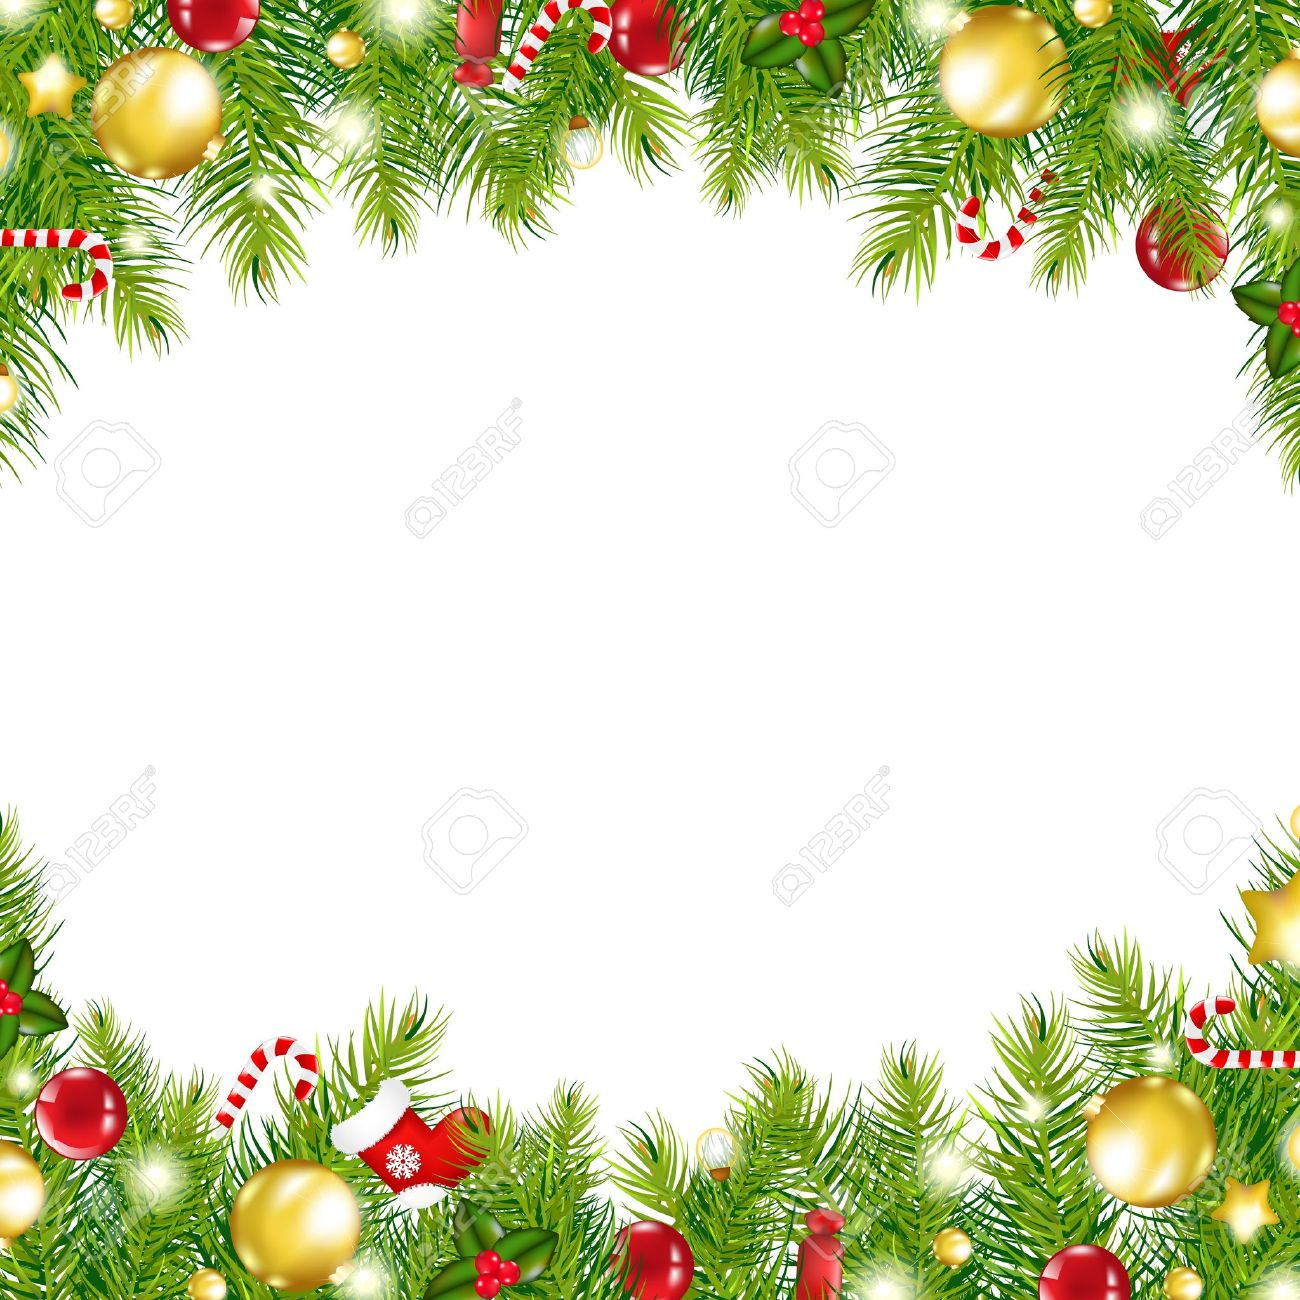 Holiday Border Stock Photos & Pictures. Royalty Free Holiday ...